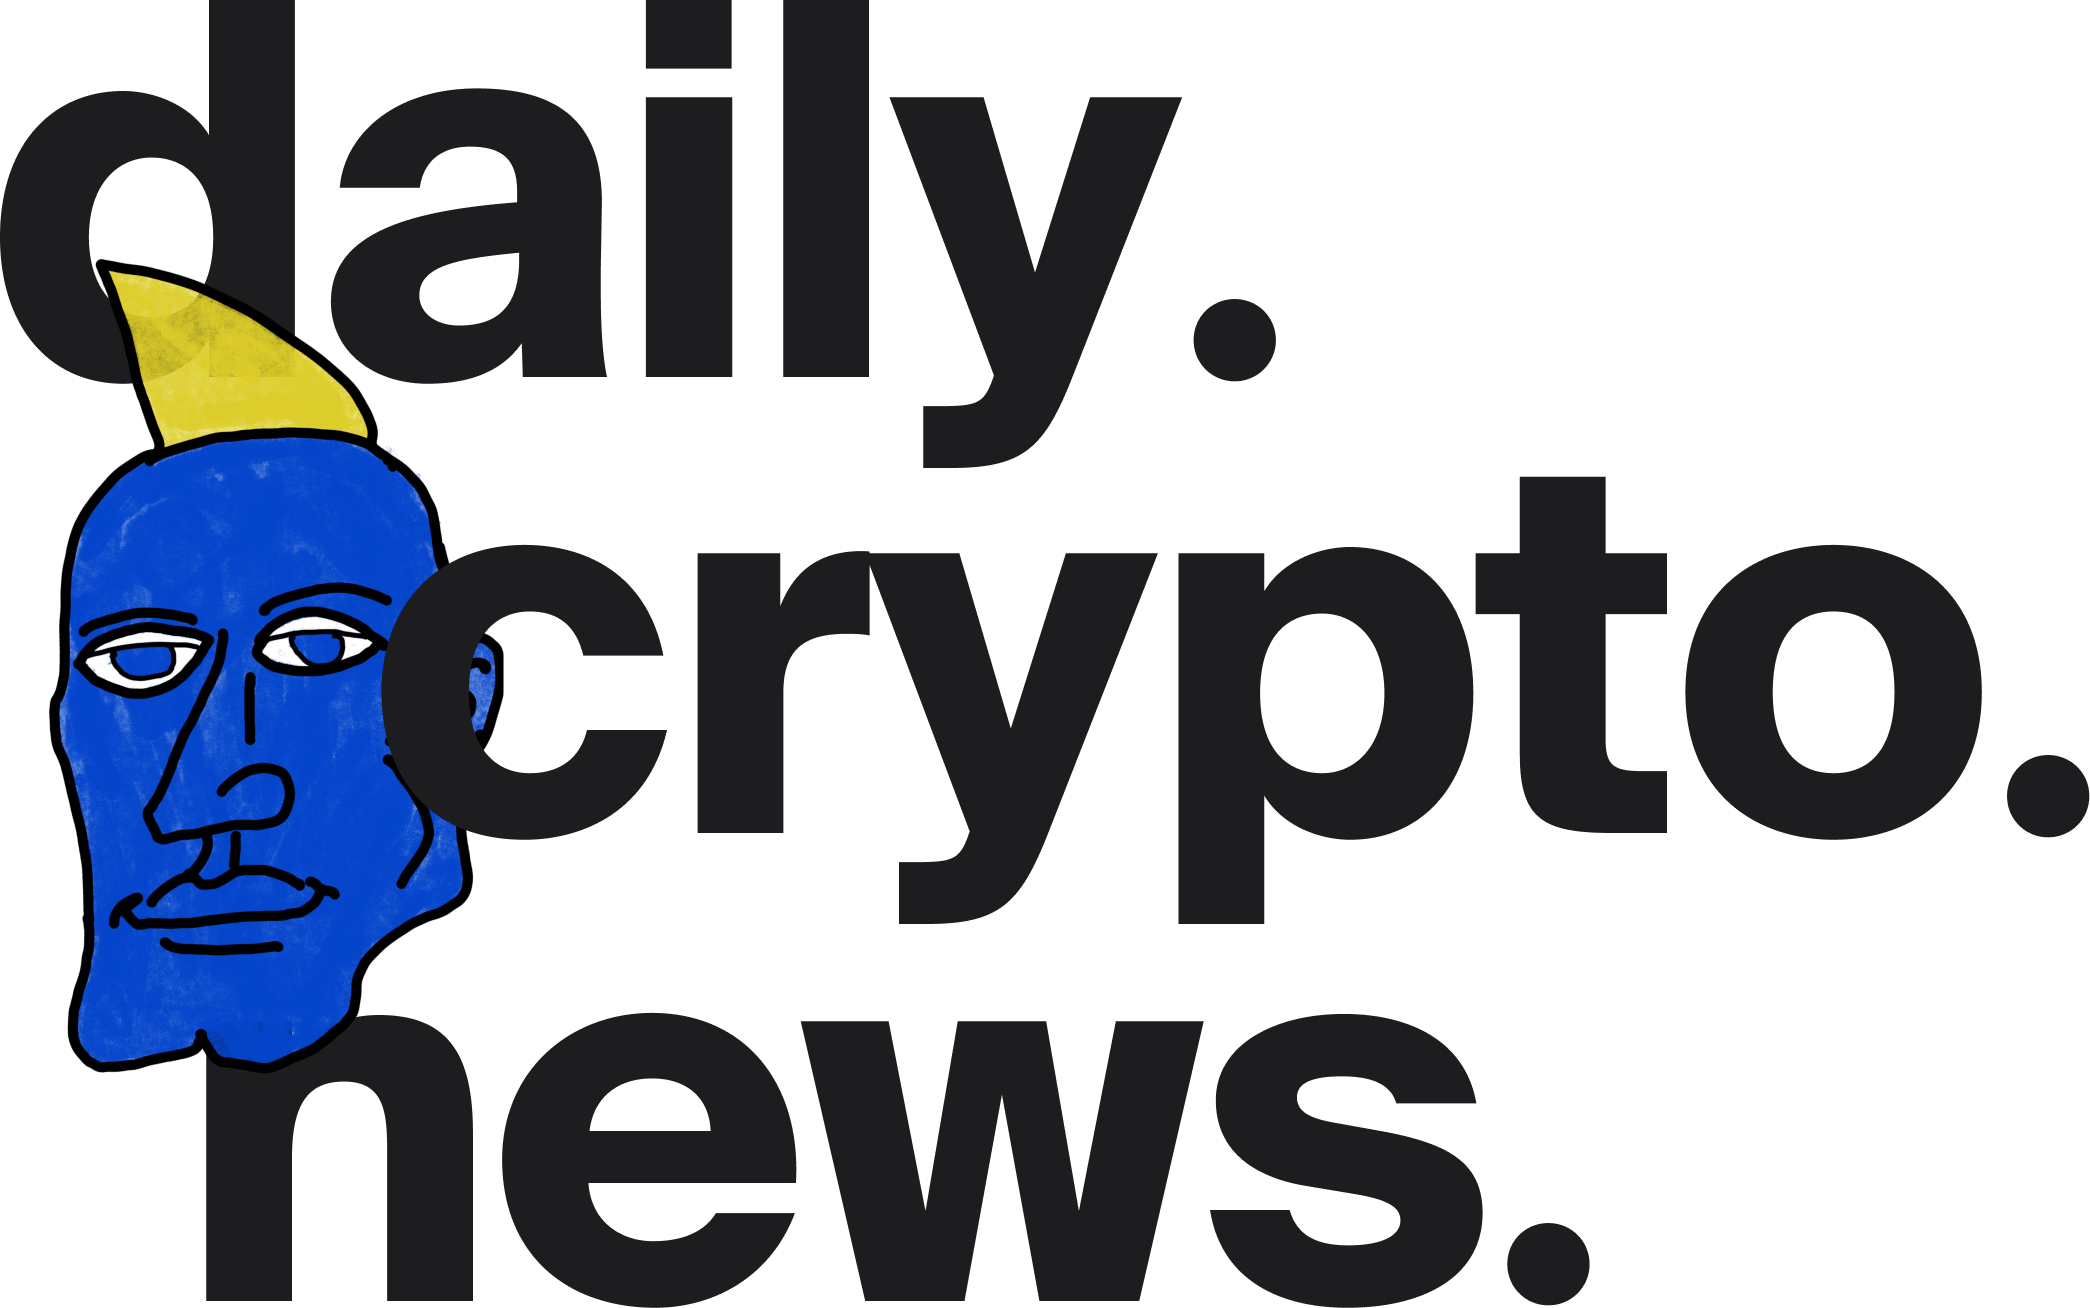 daily crypto digest